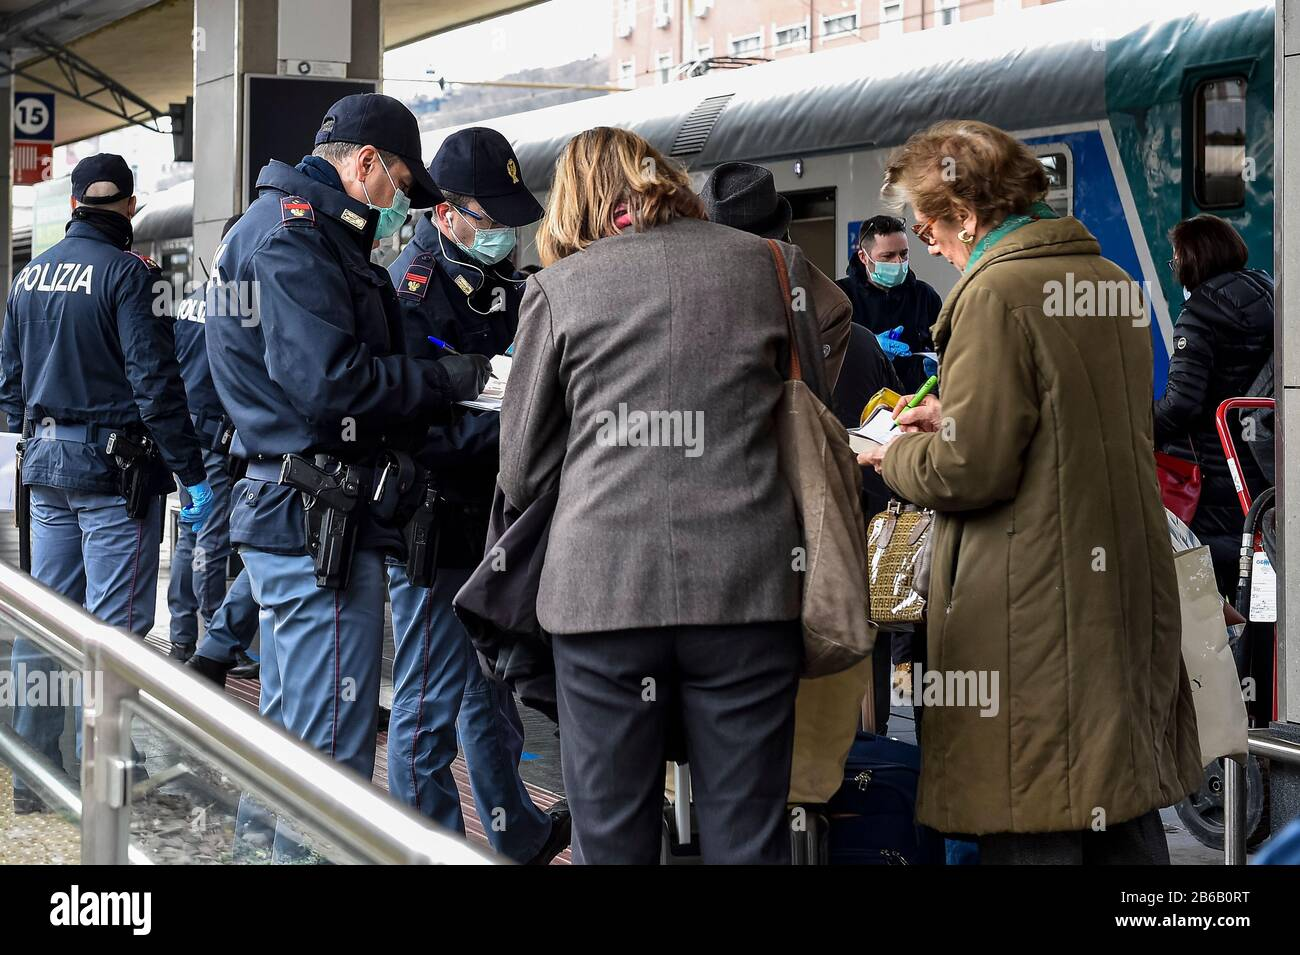 Turin, Italy. 09th Mar, 2020. TURIN, ITALY - March 09, 2020: Police officers check passengers leaving from Turin Porta Nuova train station. The Italian government imposed a virtual lockdown on the north of the country as part of measures to stop the spread of the coronavirus COVID-19 outbreak in Italy. (Photo by Nicolò Campo/Sipa USA) Credit: Sipa USA/Alamy Live News Stock Photo